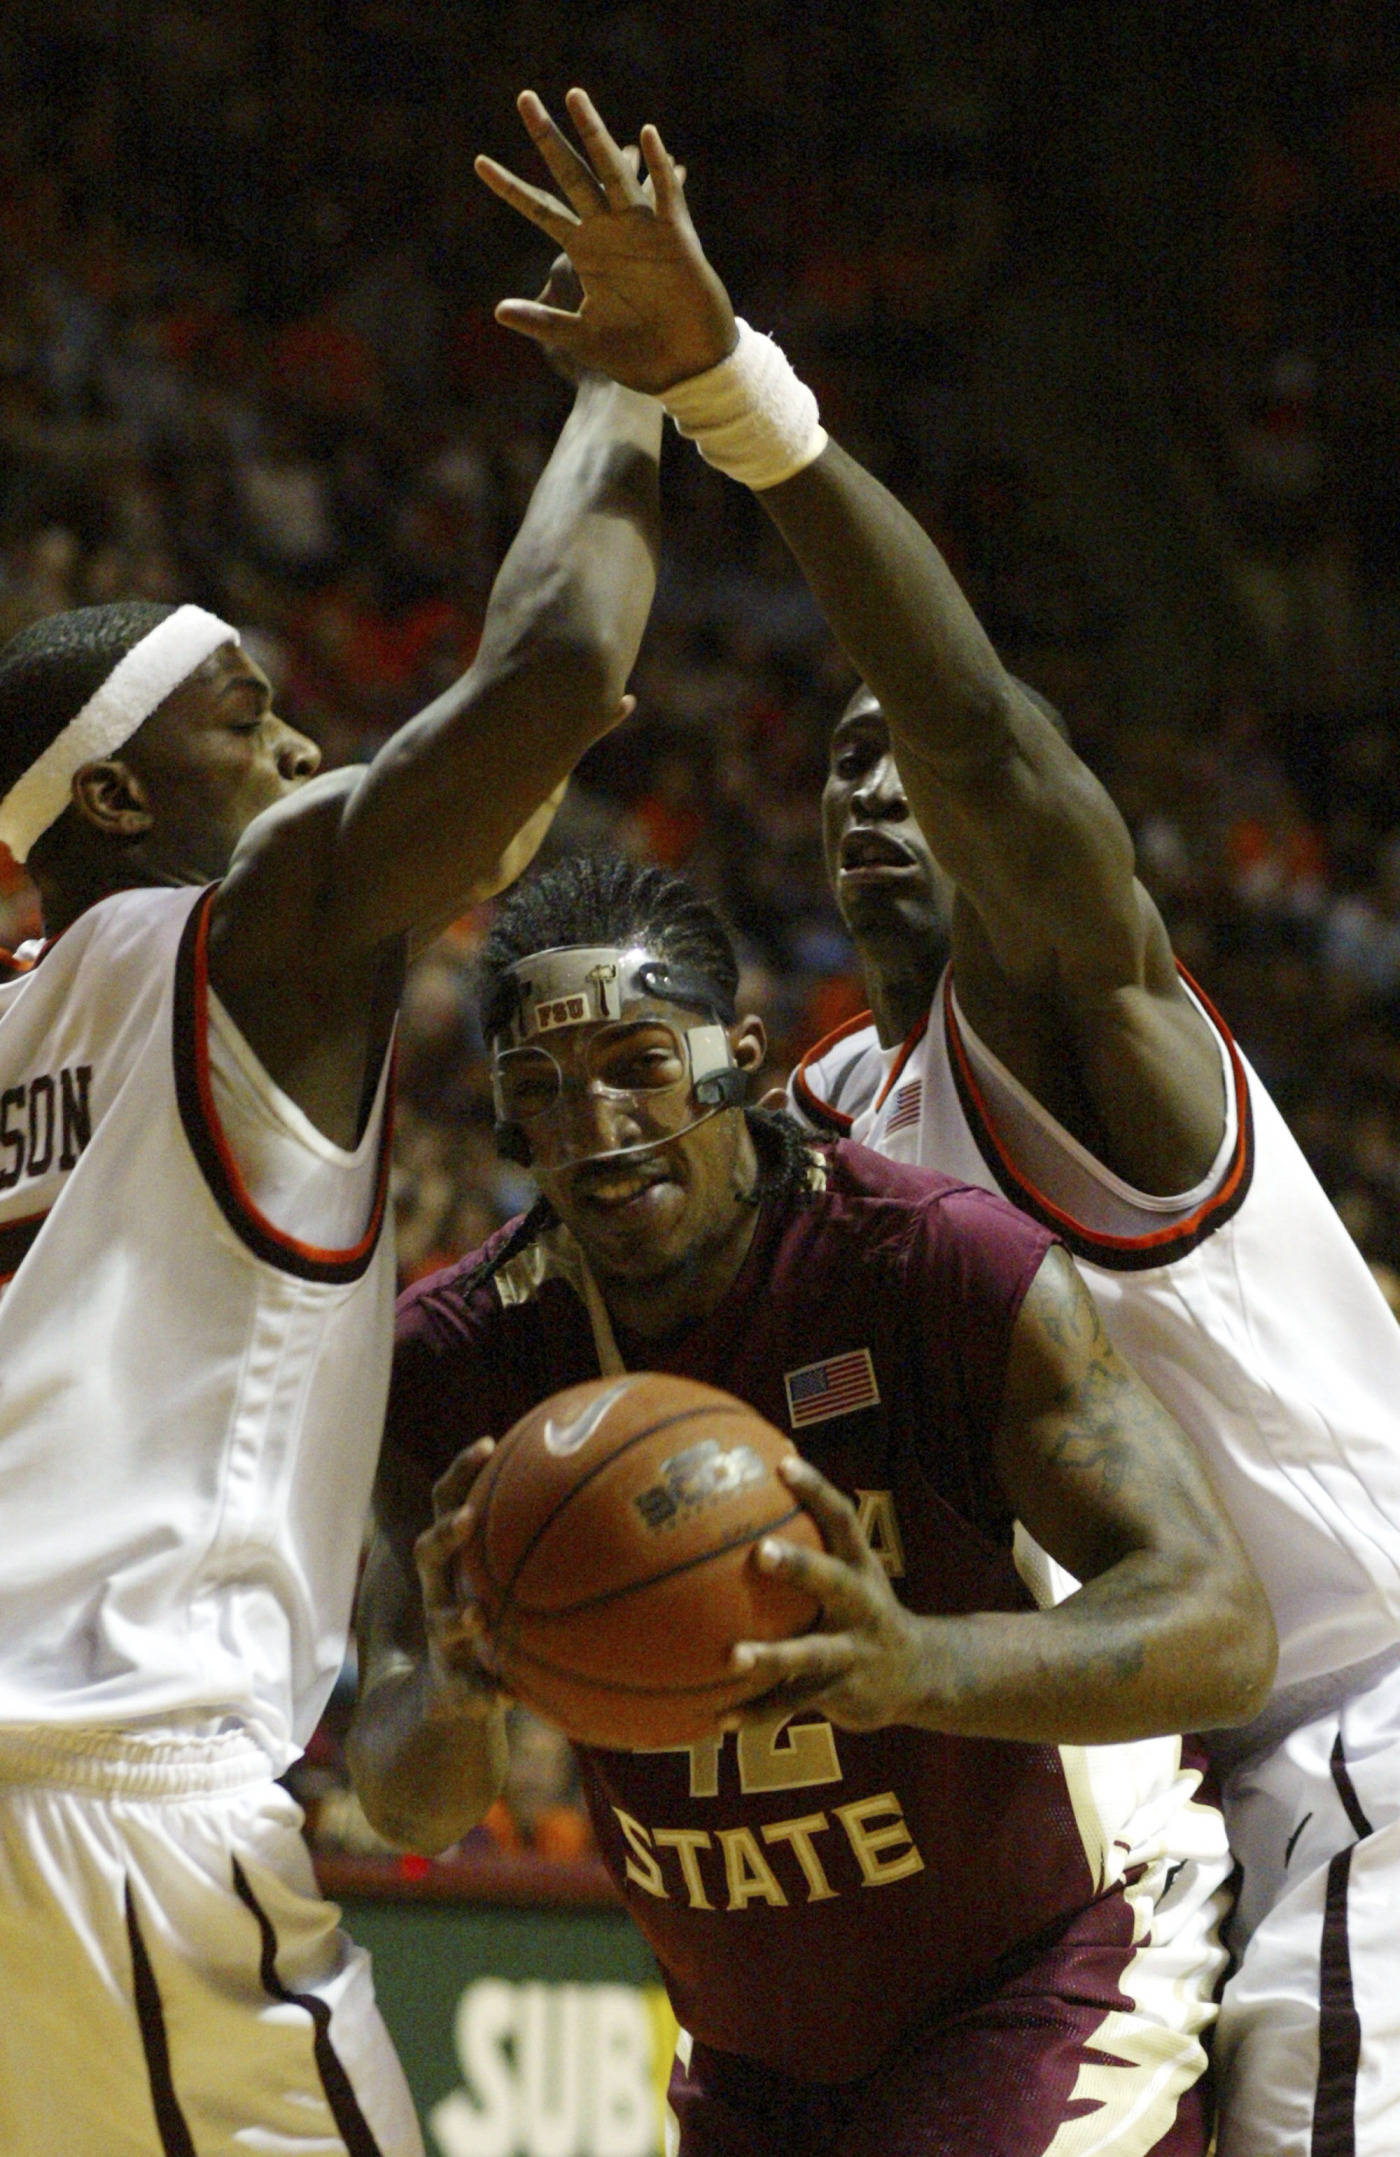 Florida State's Ryan Reid, center, gets past Virginia Tech's J.T. Thompson, left, and Cheick Diakite, right, during the first half of a college basketball game in Blacksburg, Va., Tuesday, Jan. 29, 2008.